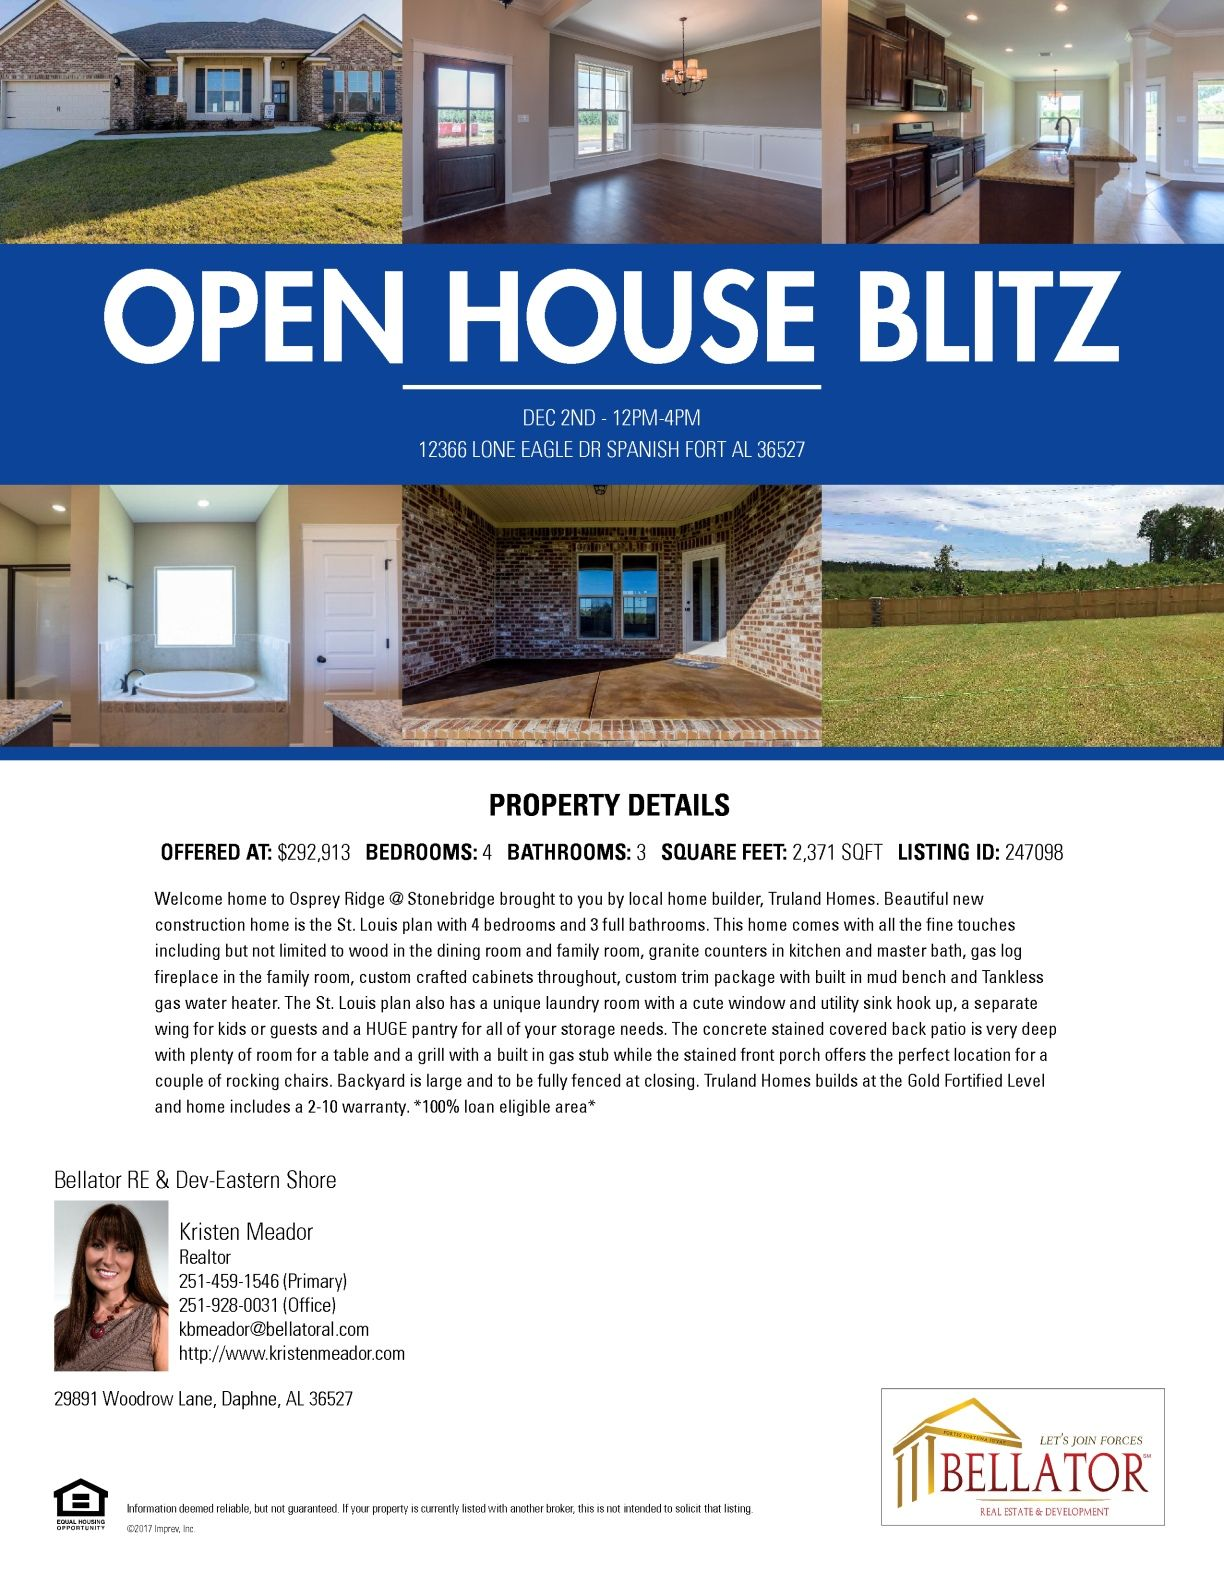 Open House Blitz Open House Home Builders Real Estate Tips